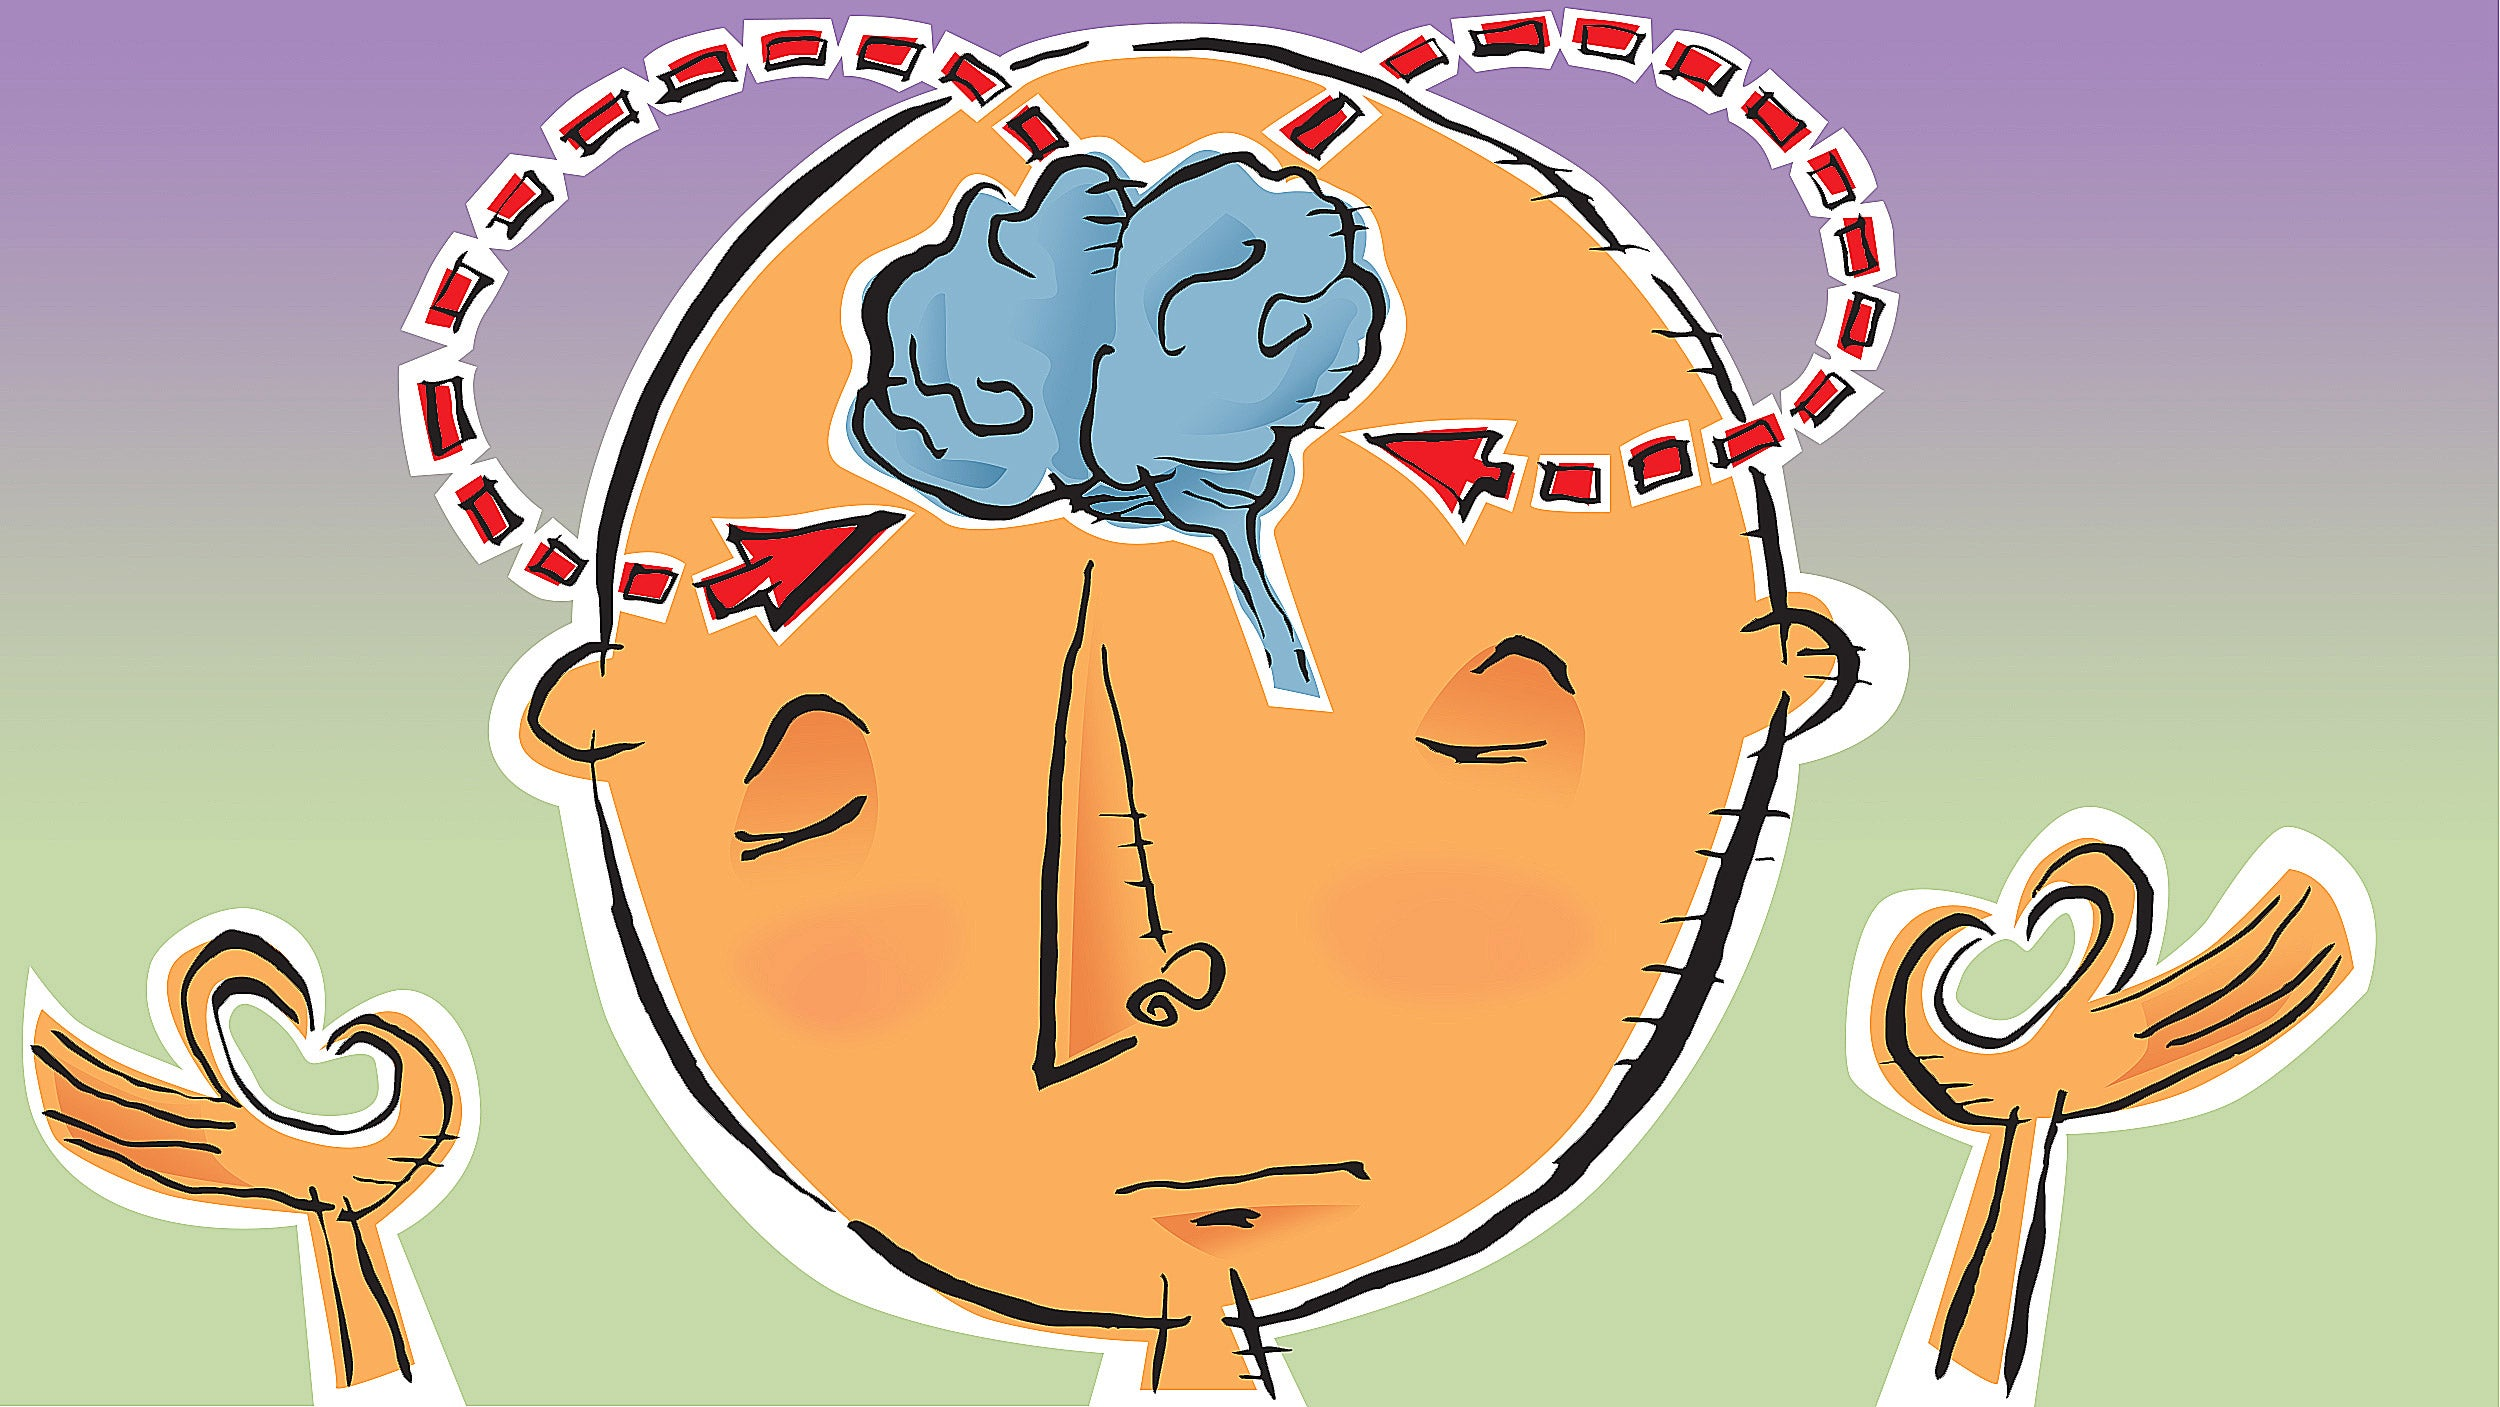 Harvard researchers study how mindfulness may change the